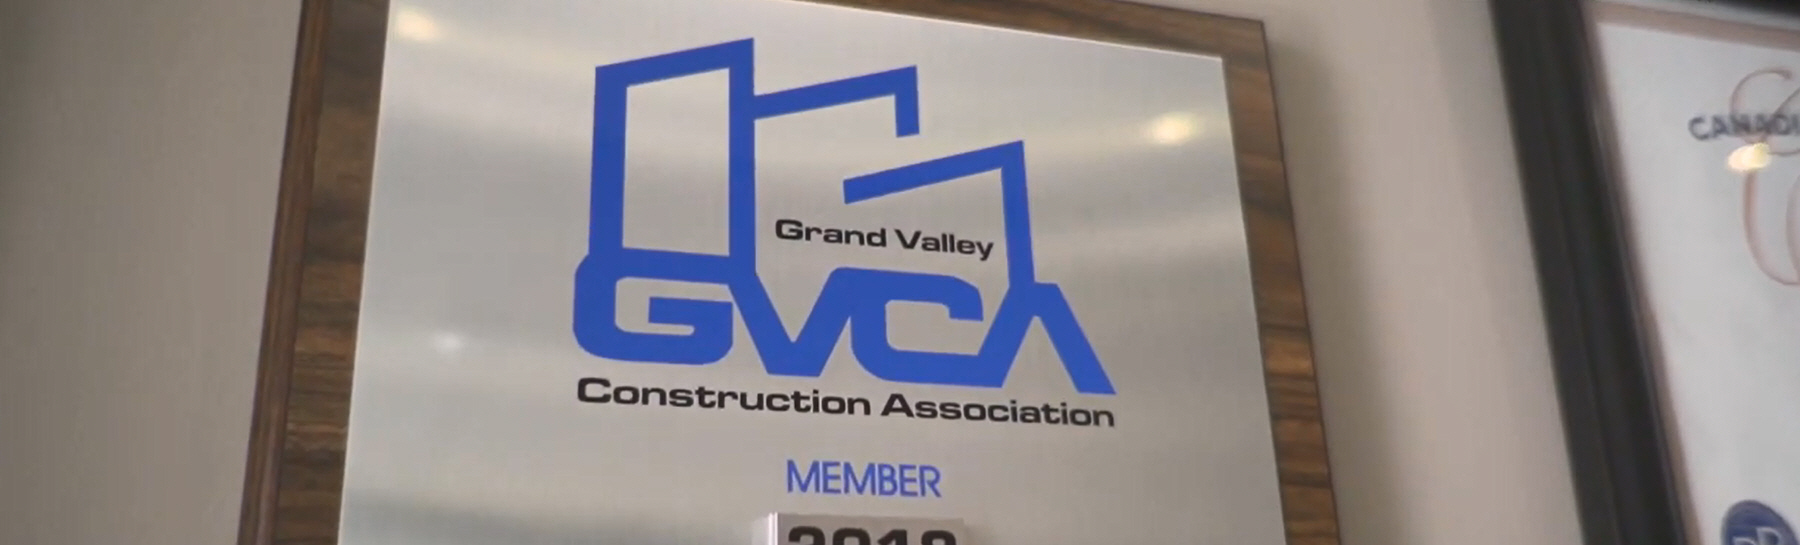 GVCA logo on plaque